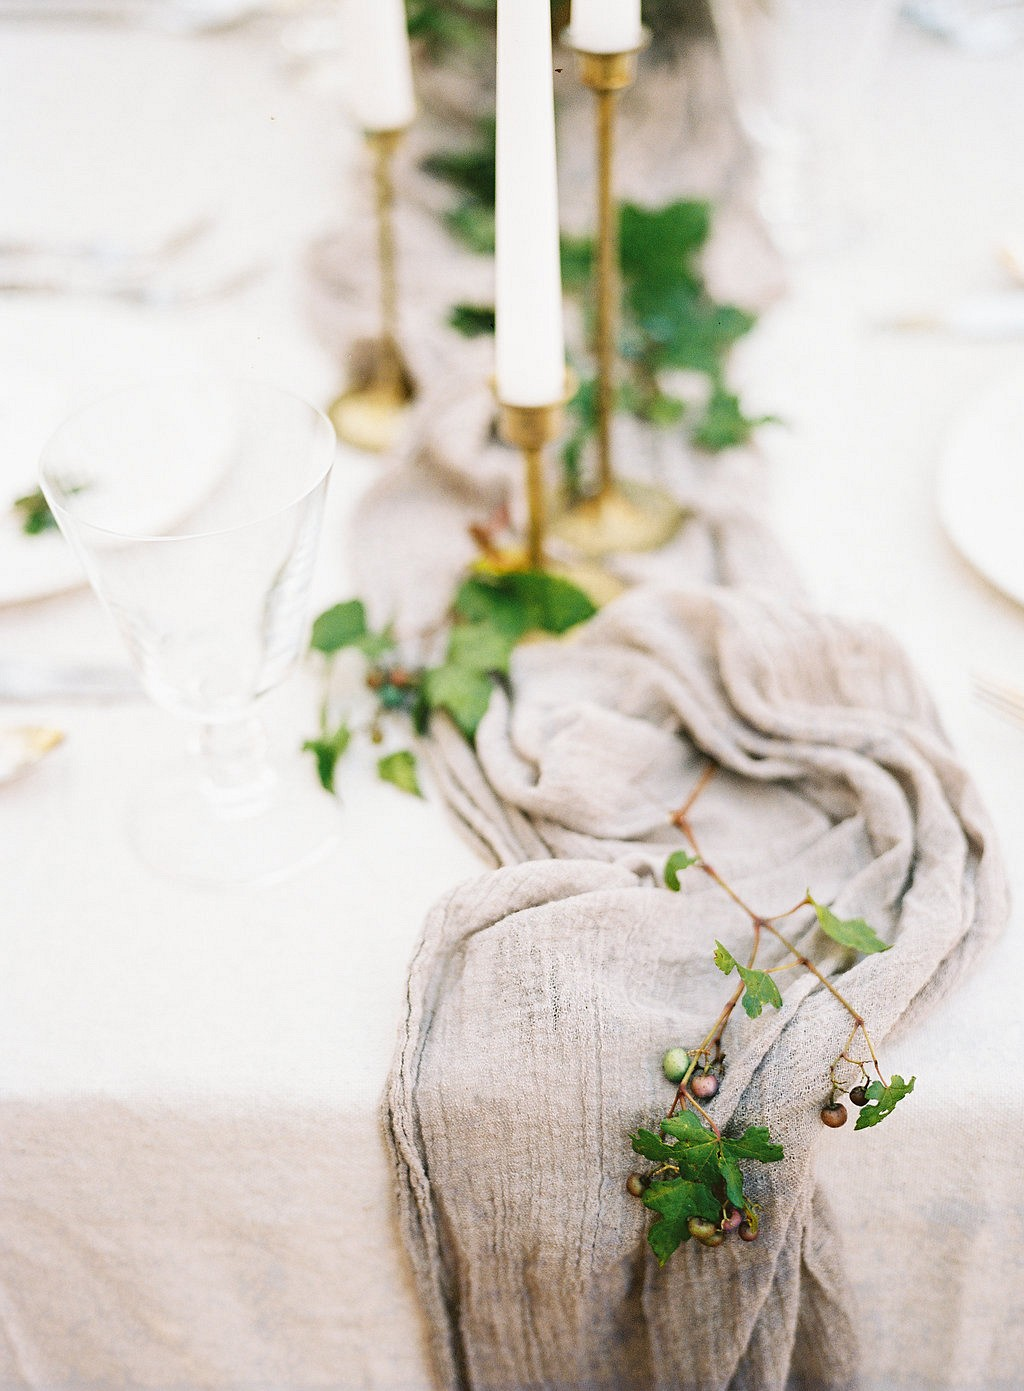 Autumnal organic wedding inspiration